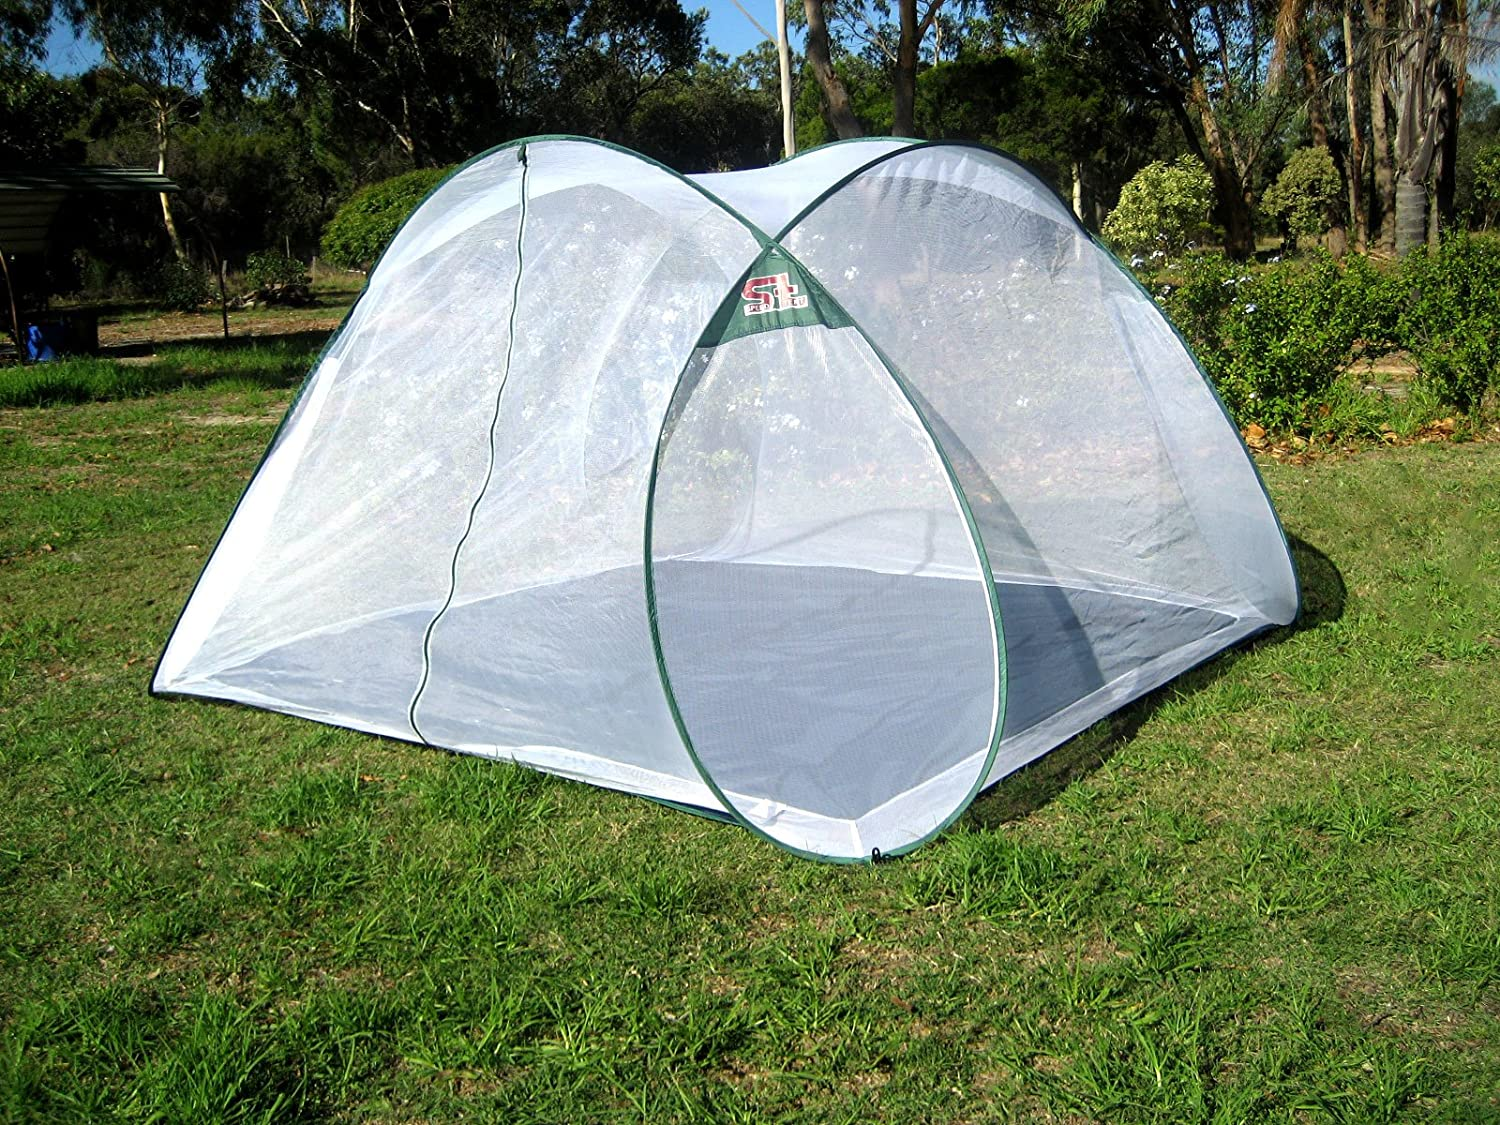 Amazon.com  SpeedTent Portable Foldable Mosquito Net Tent Insect protection nets Anti-Bug Net 4~5 Person net tents  Baby & Amazon.com : SpeedTent Portable Foldable Mosquito Net Tent Insect ...